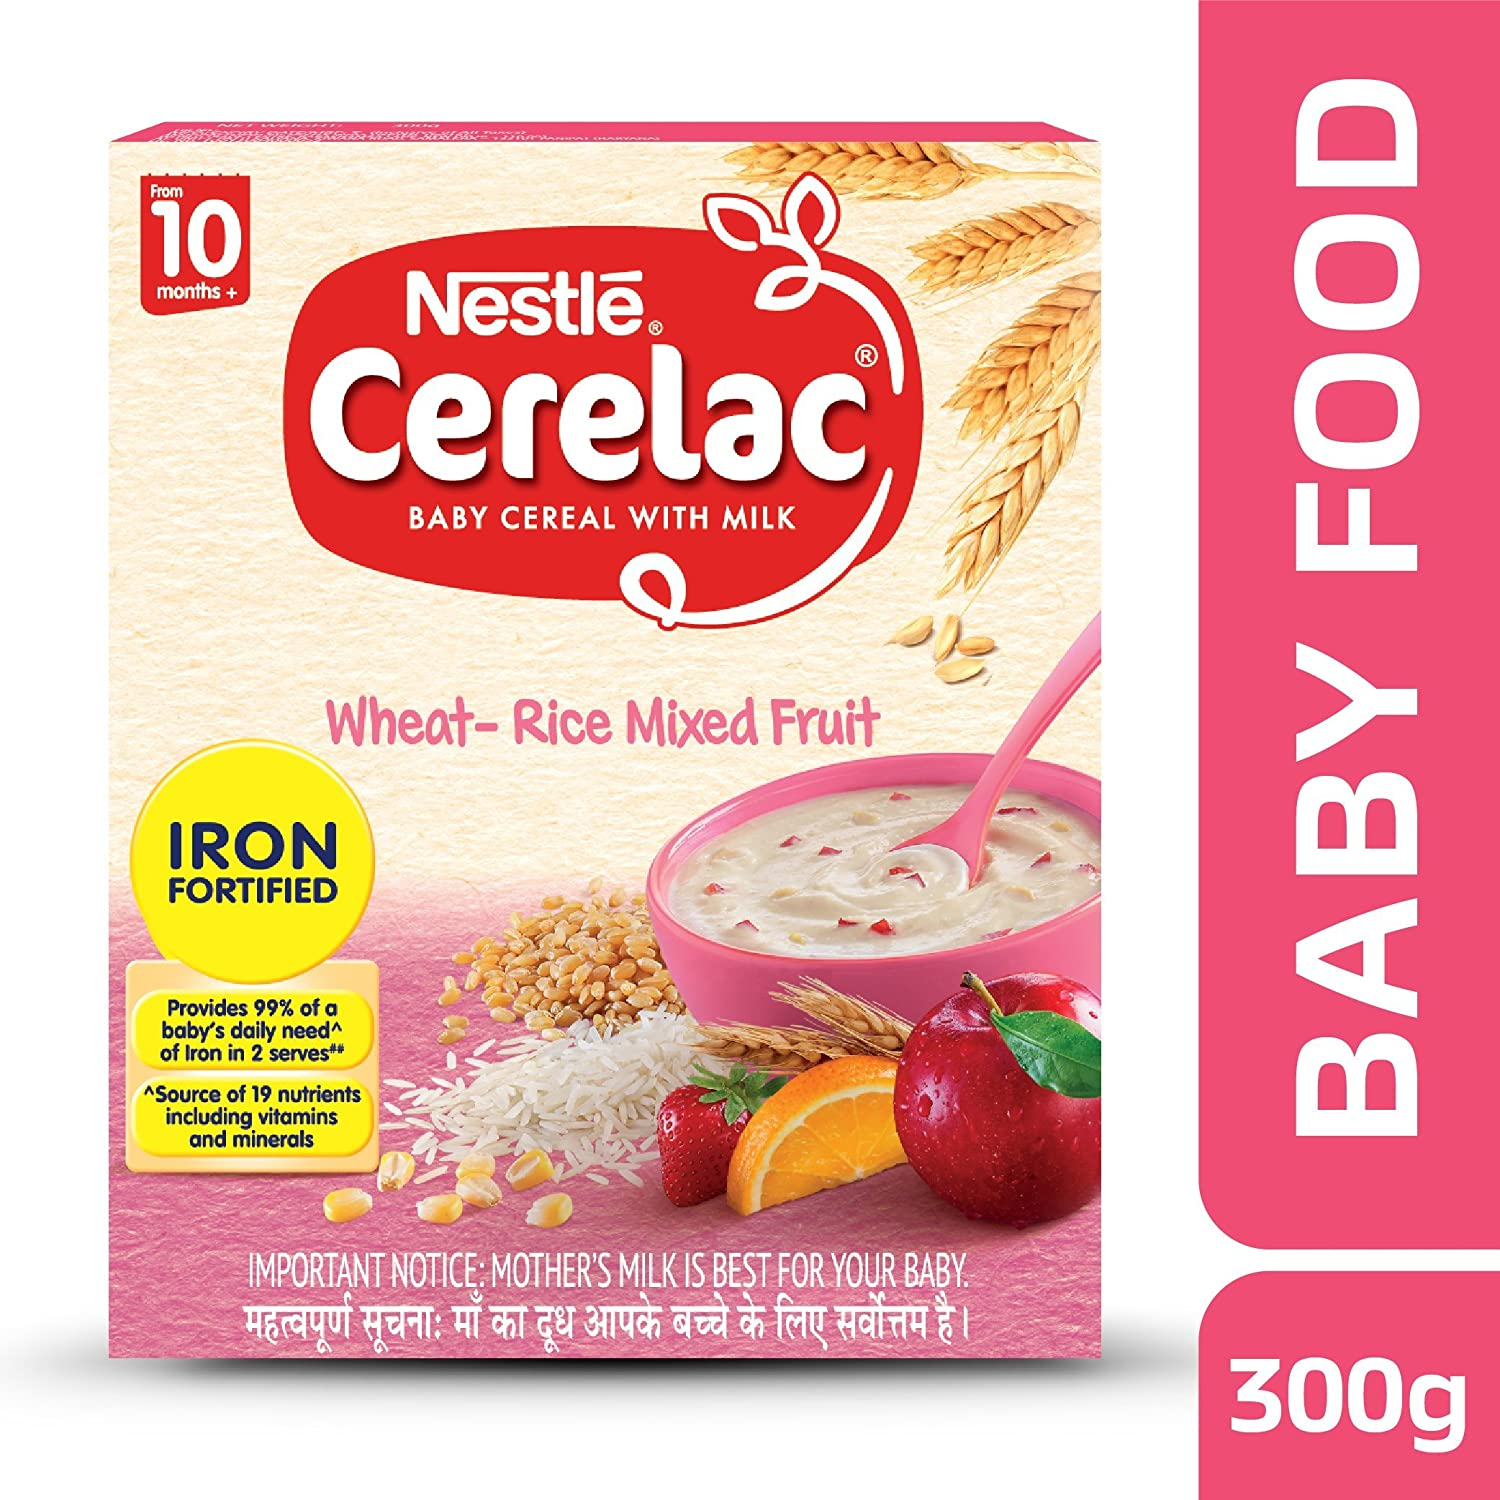 Nestlé Fortified Baby Cereal With Milk  Wheat-Rice Mixed Fruit  Stage-3 (10 Months +) - 300 gm Nestle 8901058848472